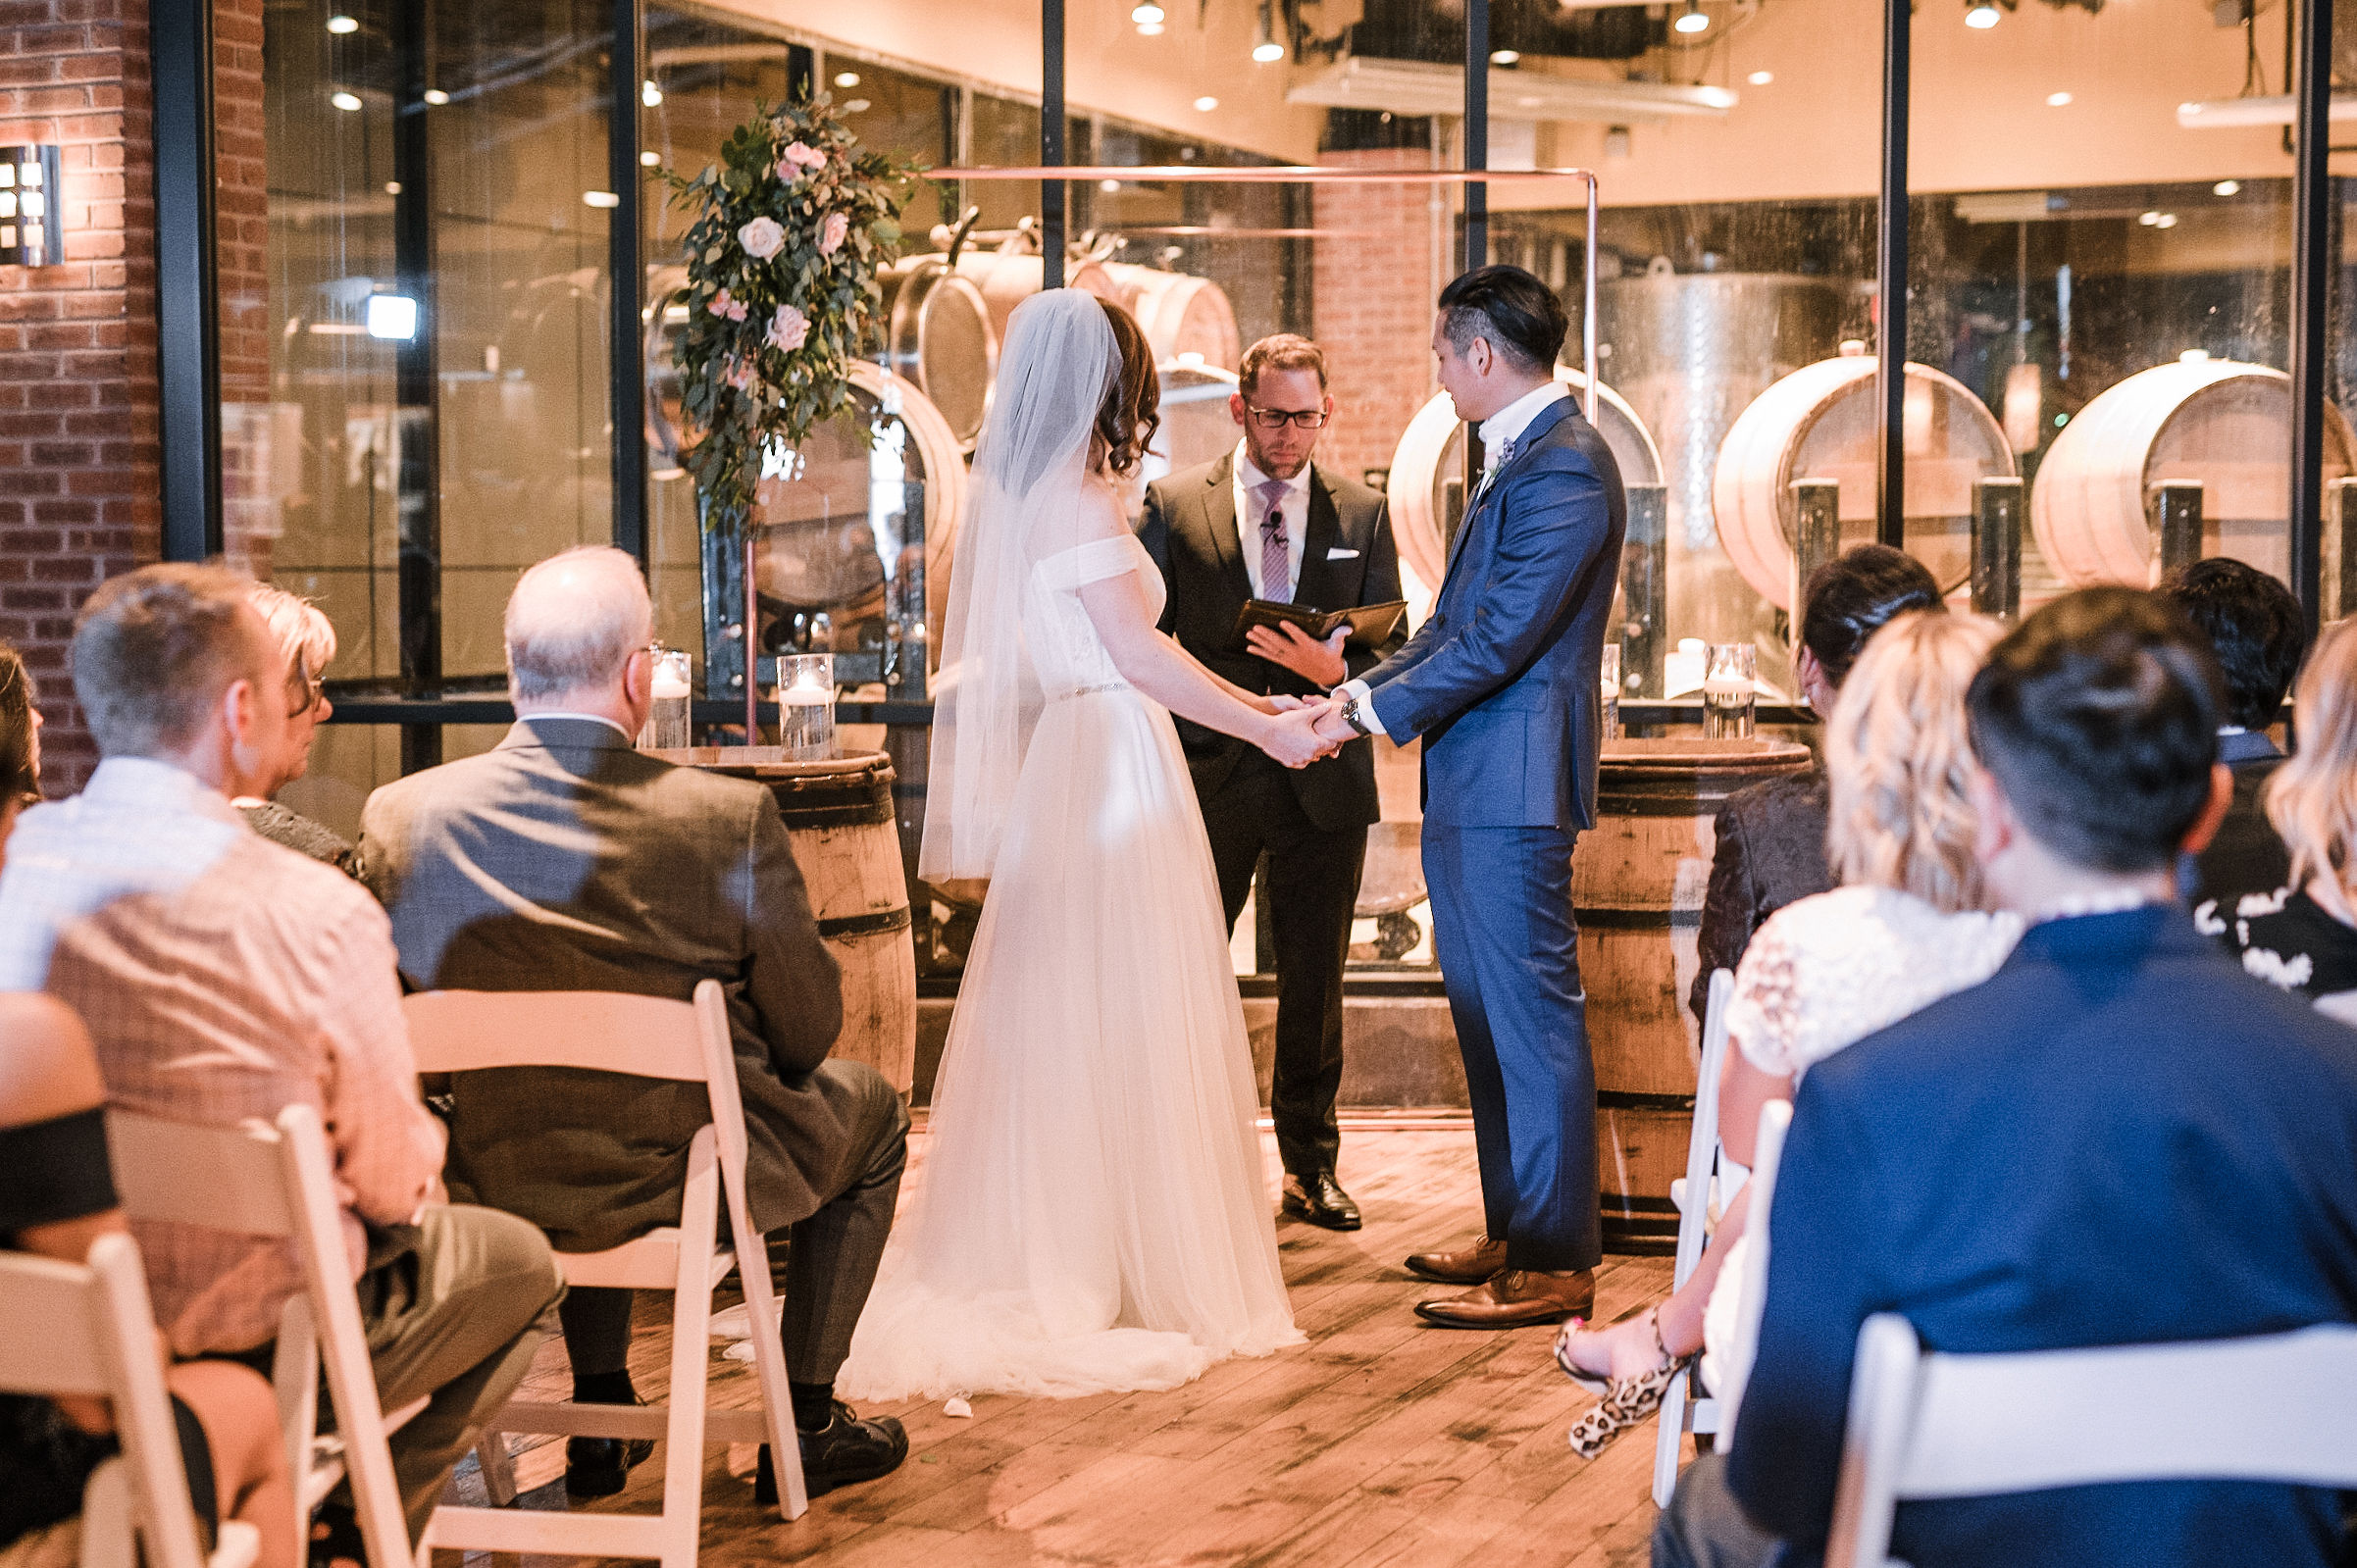 bride and groom at the alter at City Winery in Washington DC